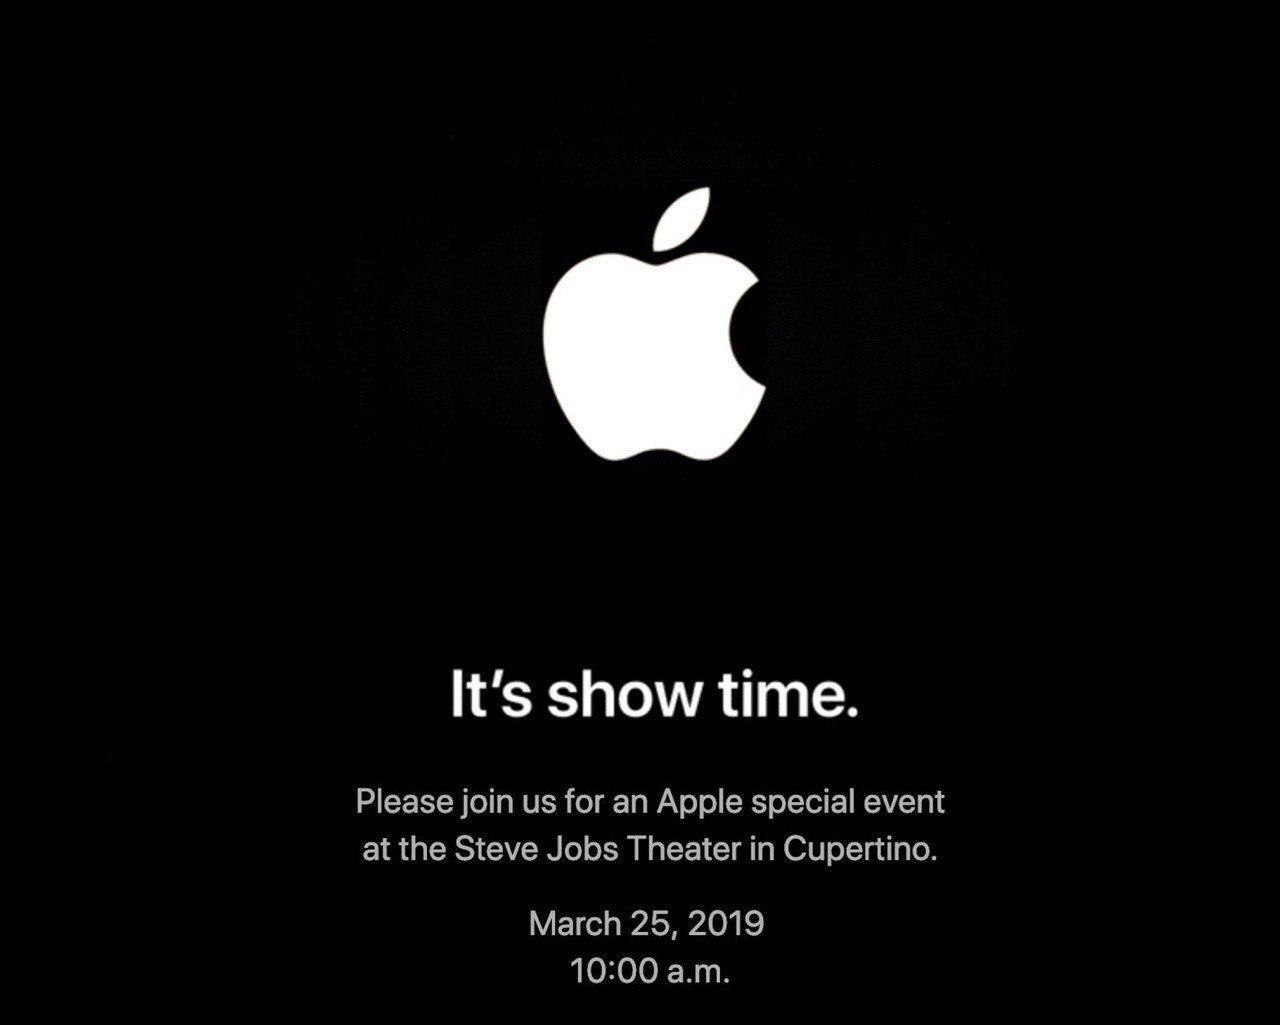 invitaciones evento 25 de marzo apple